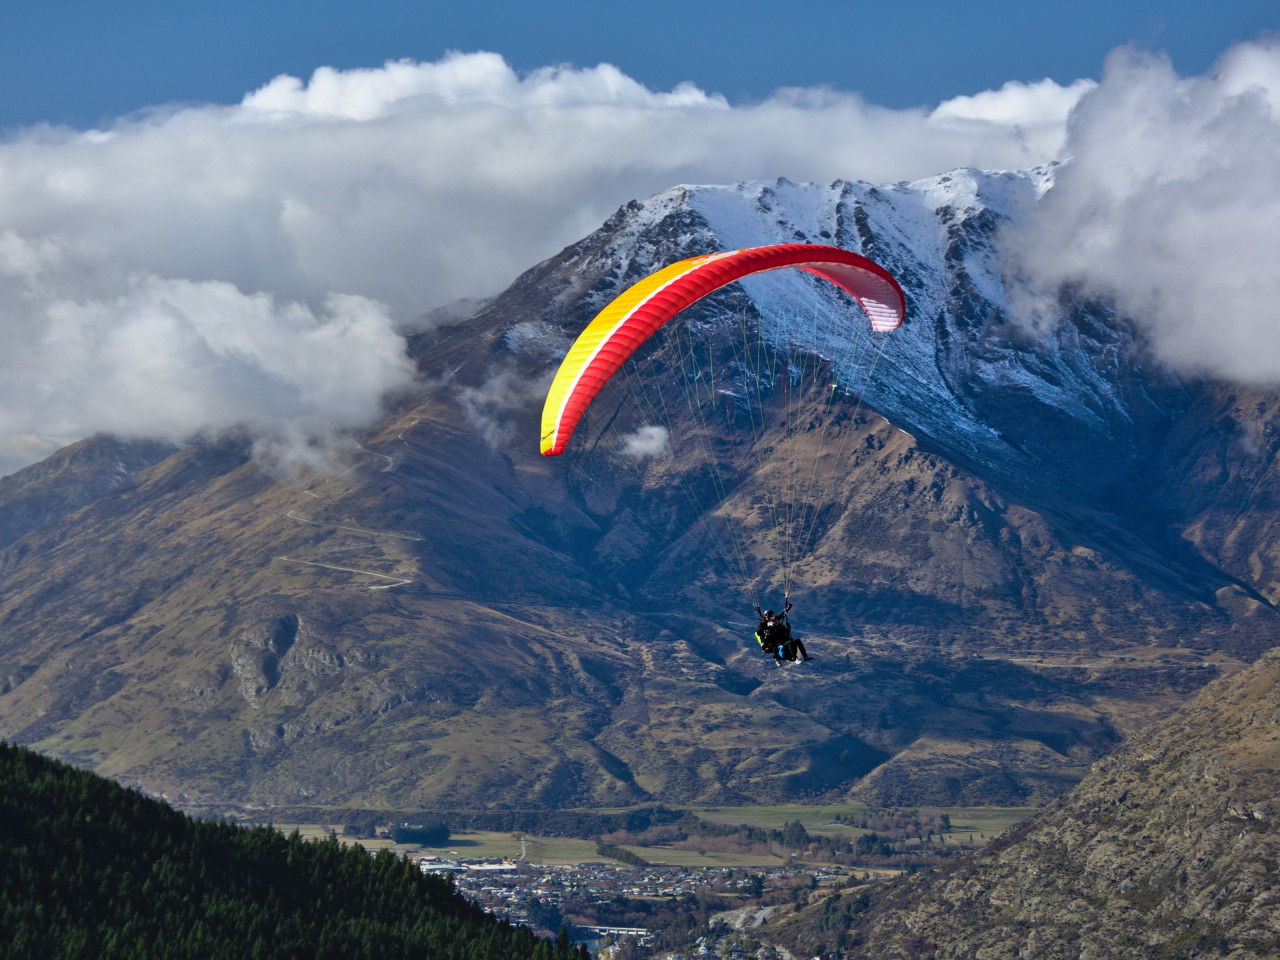 Paraglider up in the sky wallpaper 1280x960